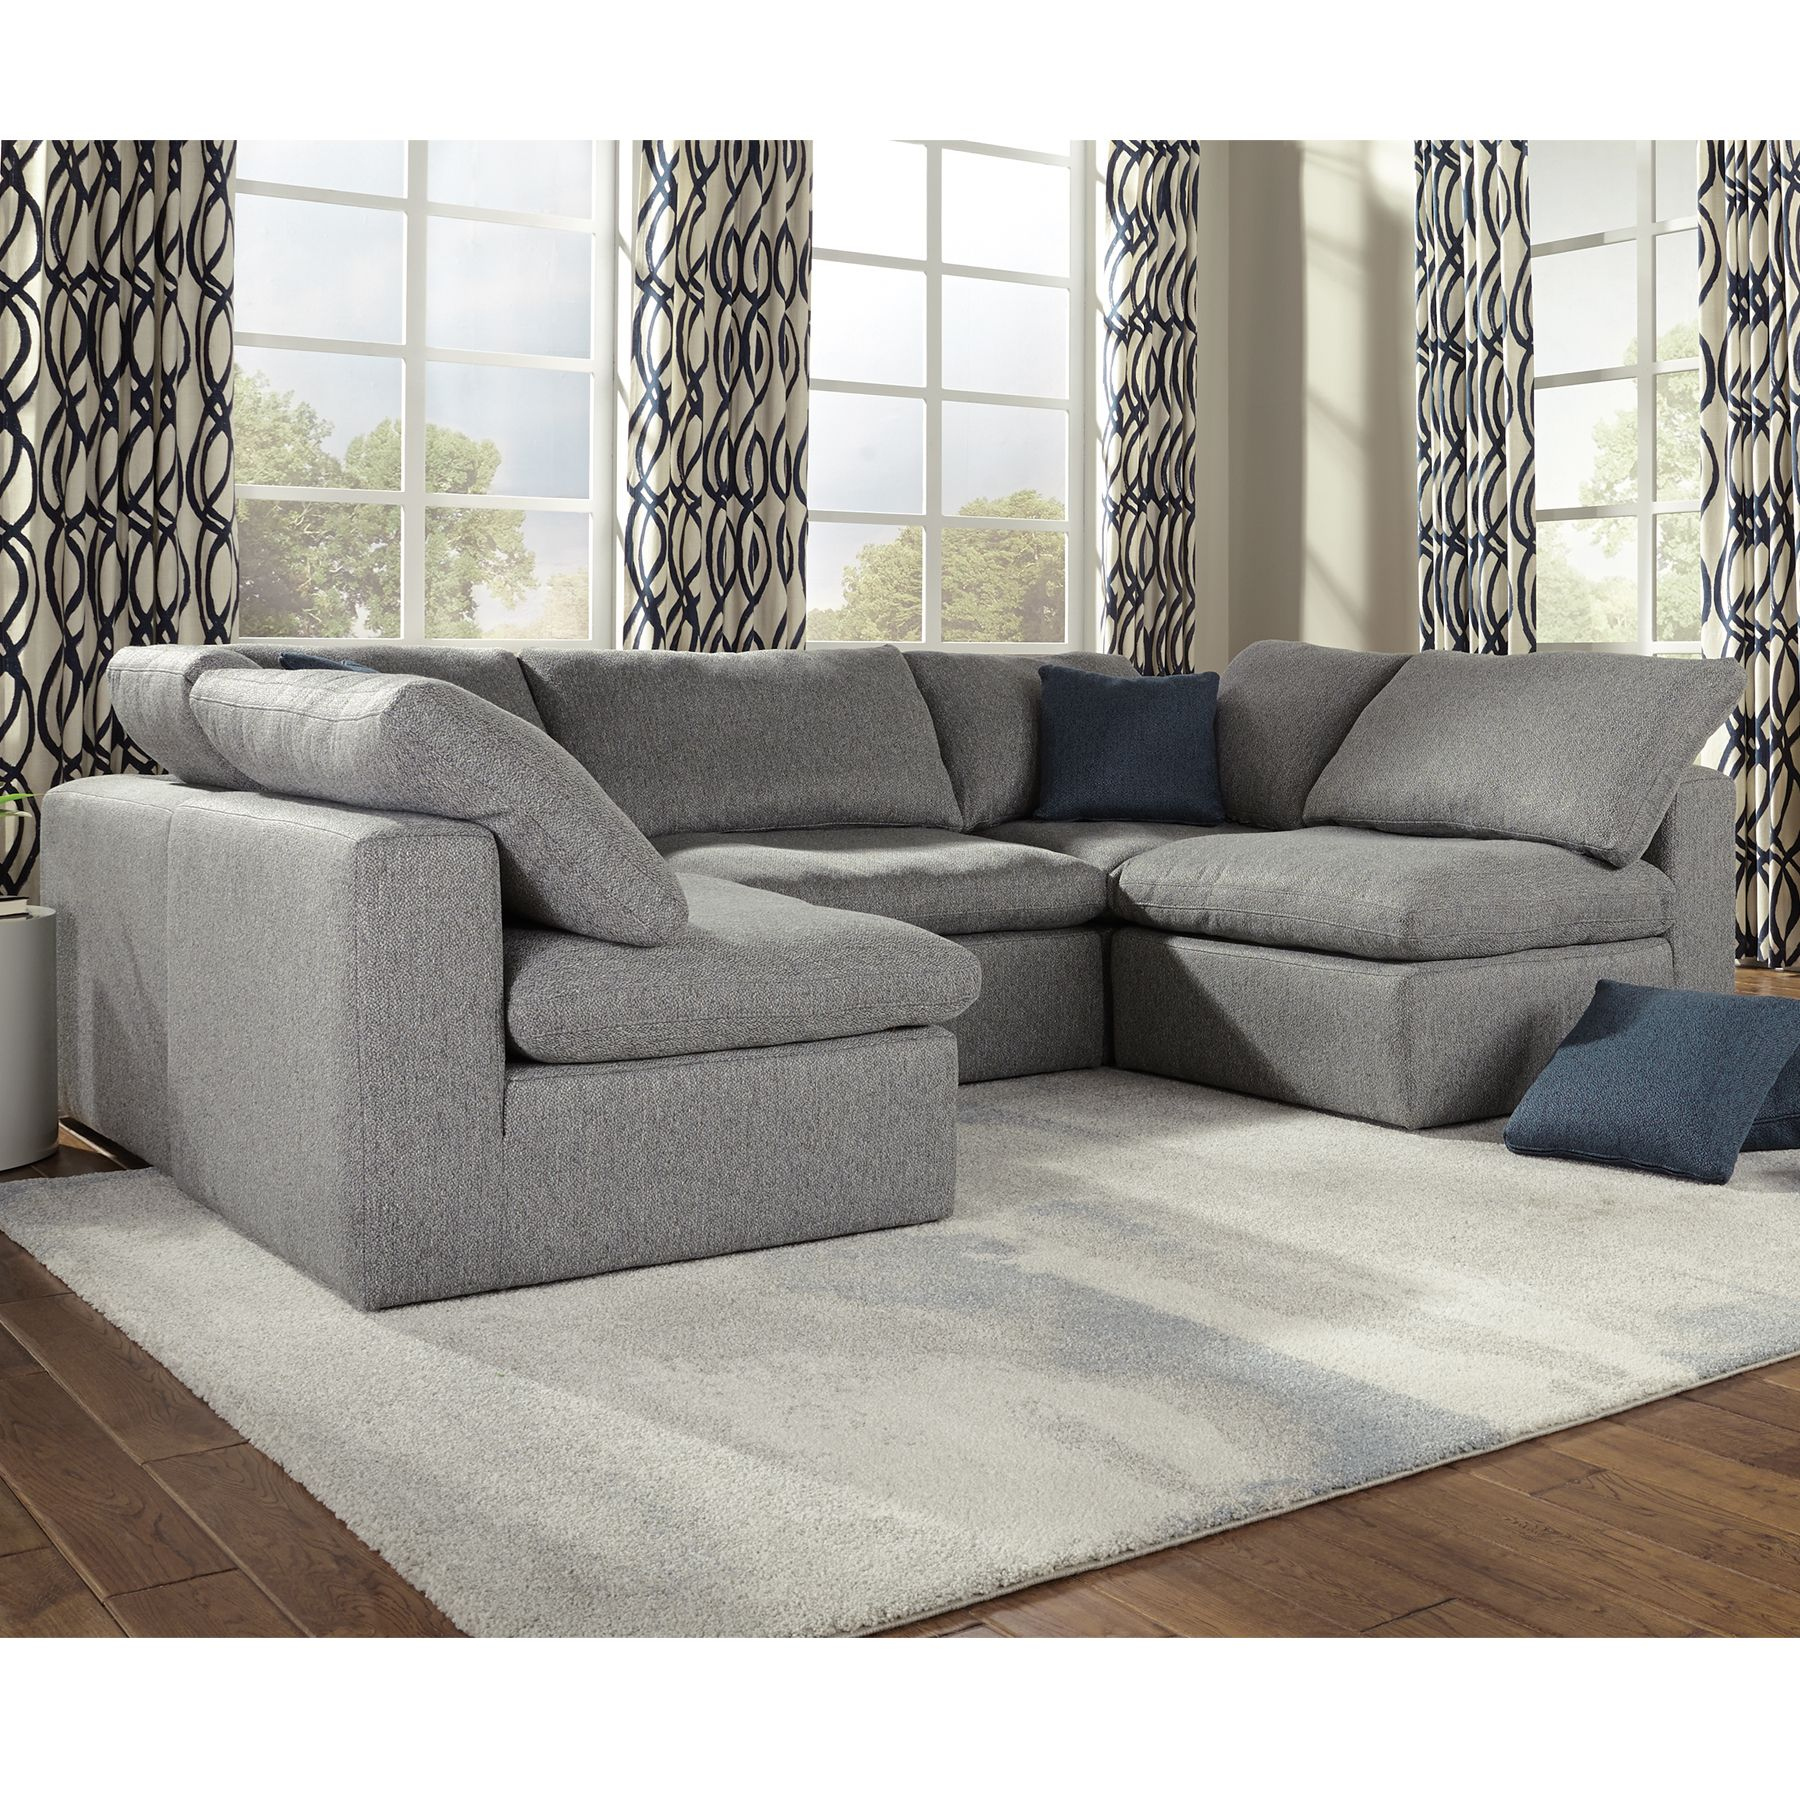 Prime Bloom Modular Sectional Create Your Fun Space Sofas And Pdpeps Interior Chair Design Pdpepsorg